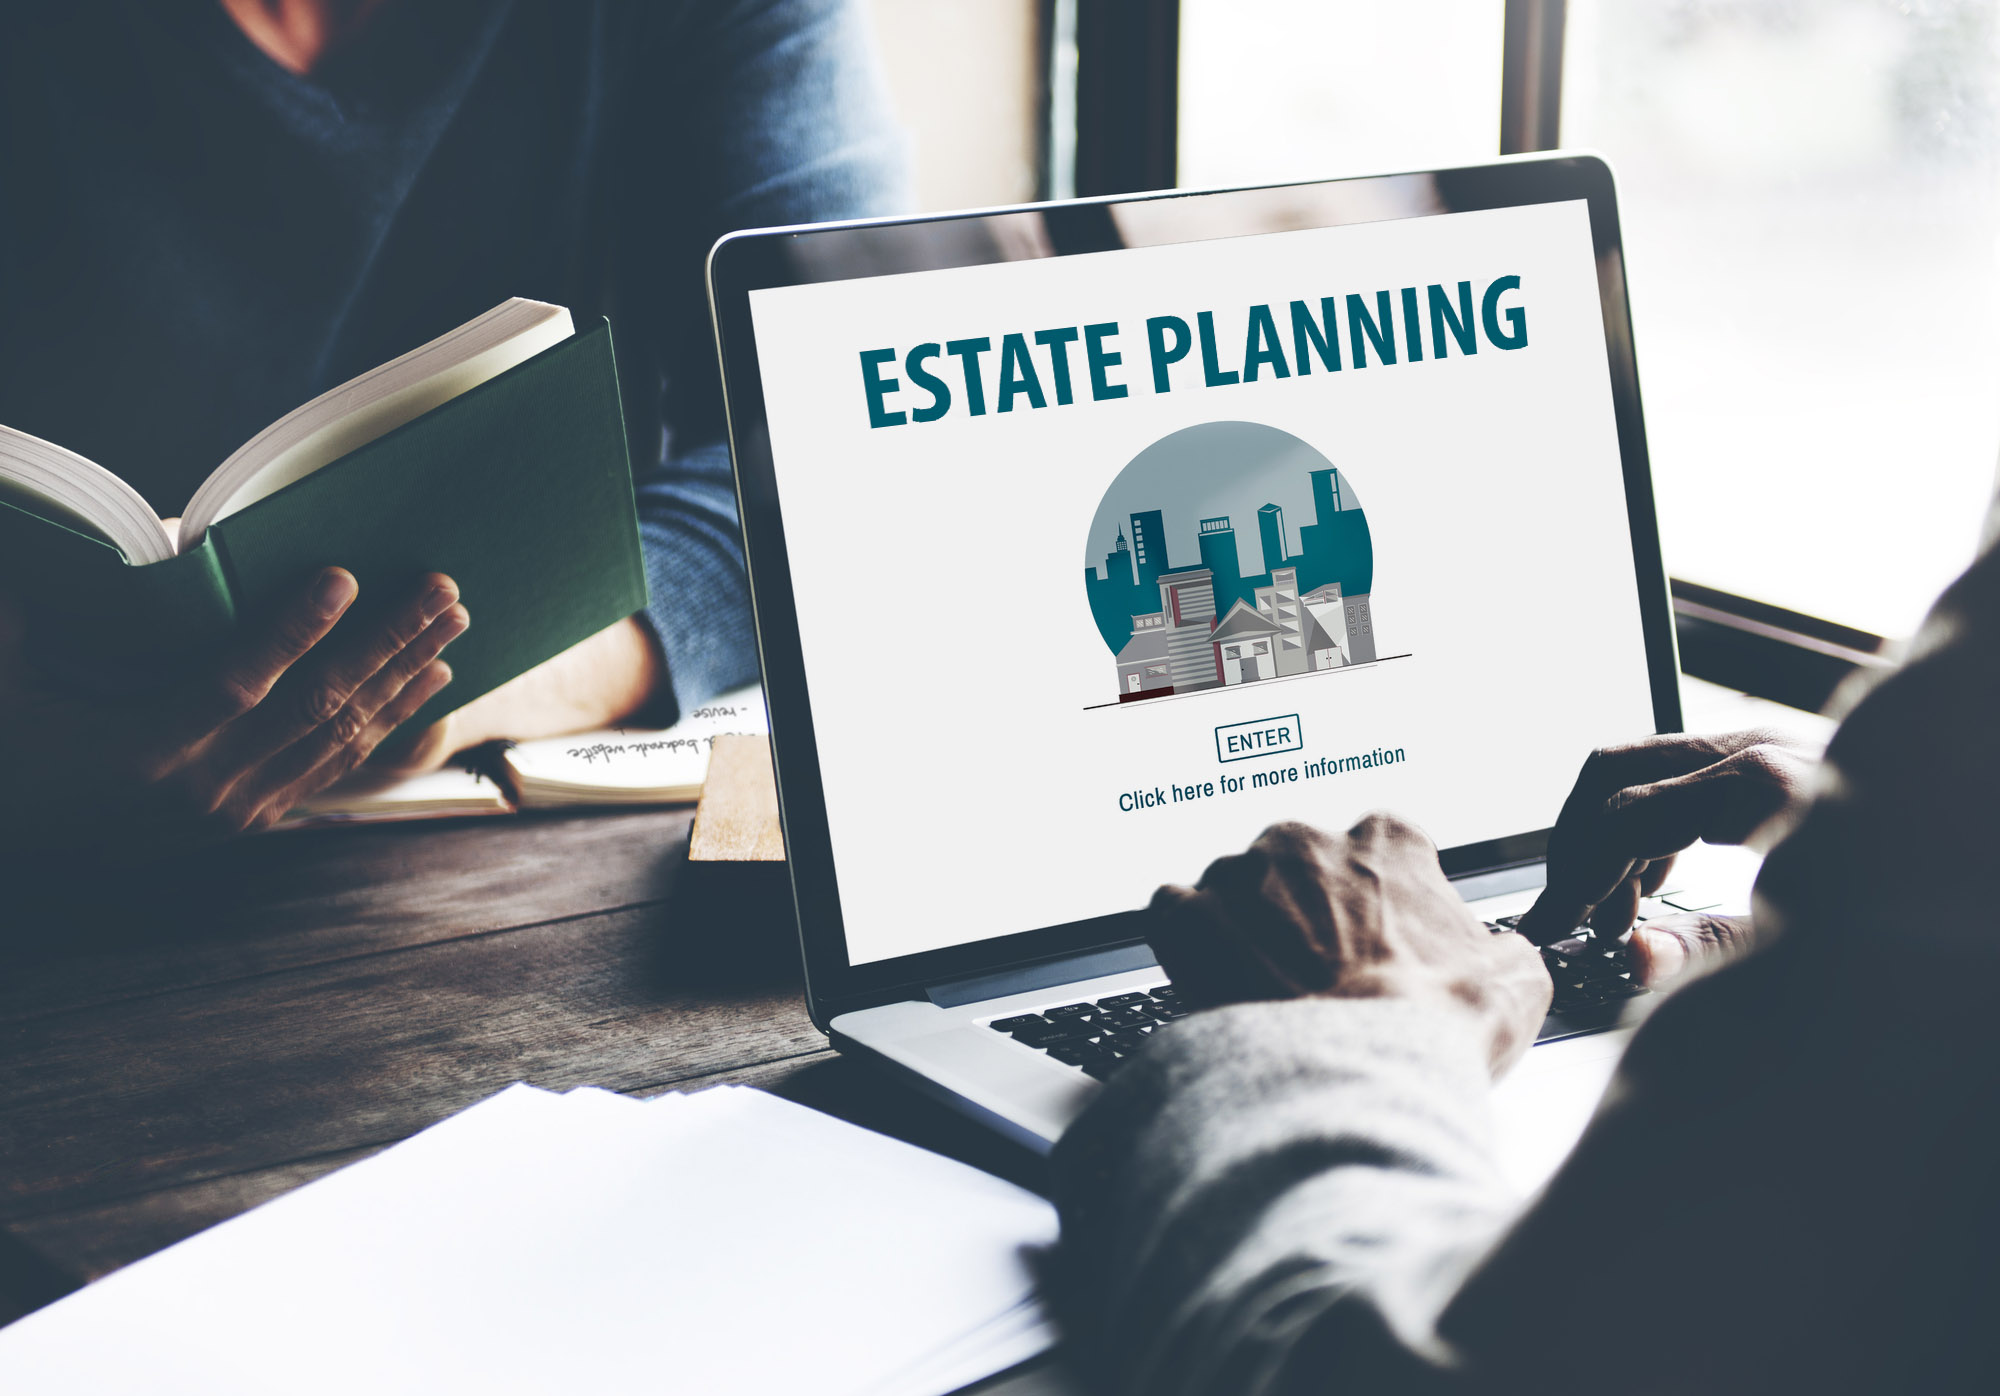 Virtual Estate Planning Will Become Mainstream